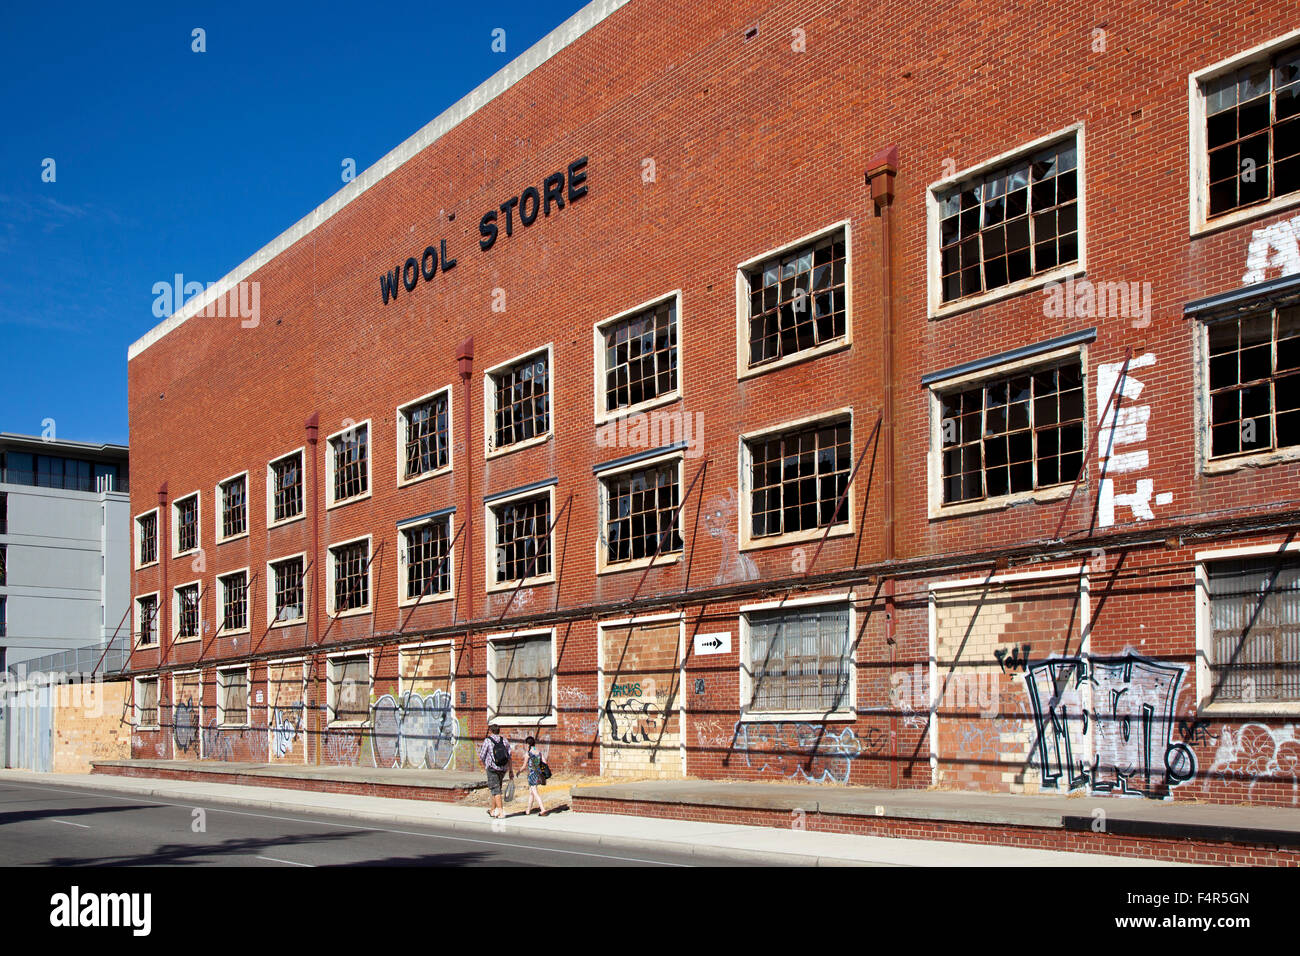 Australia, Fremantle, street, derelict building, old, wool store, frontage, bricked up, broken windows, red brick, - Stock Image